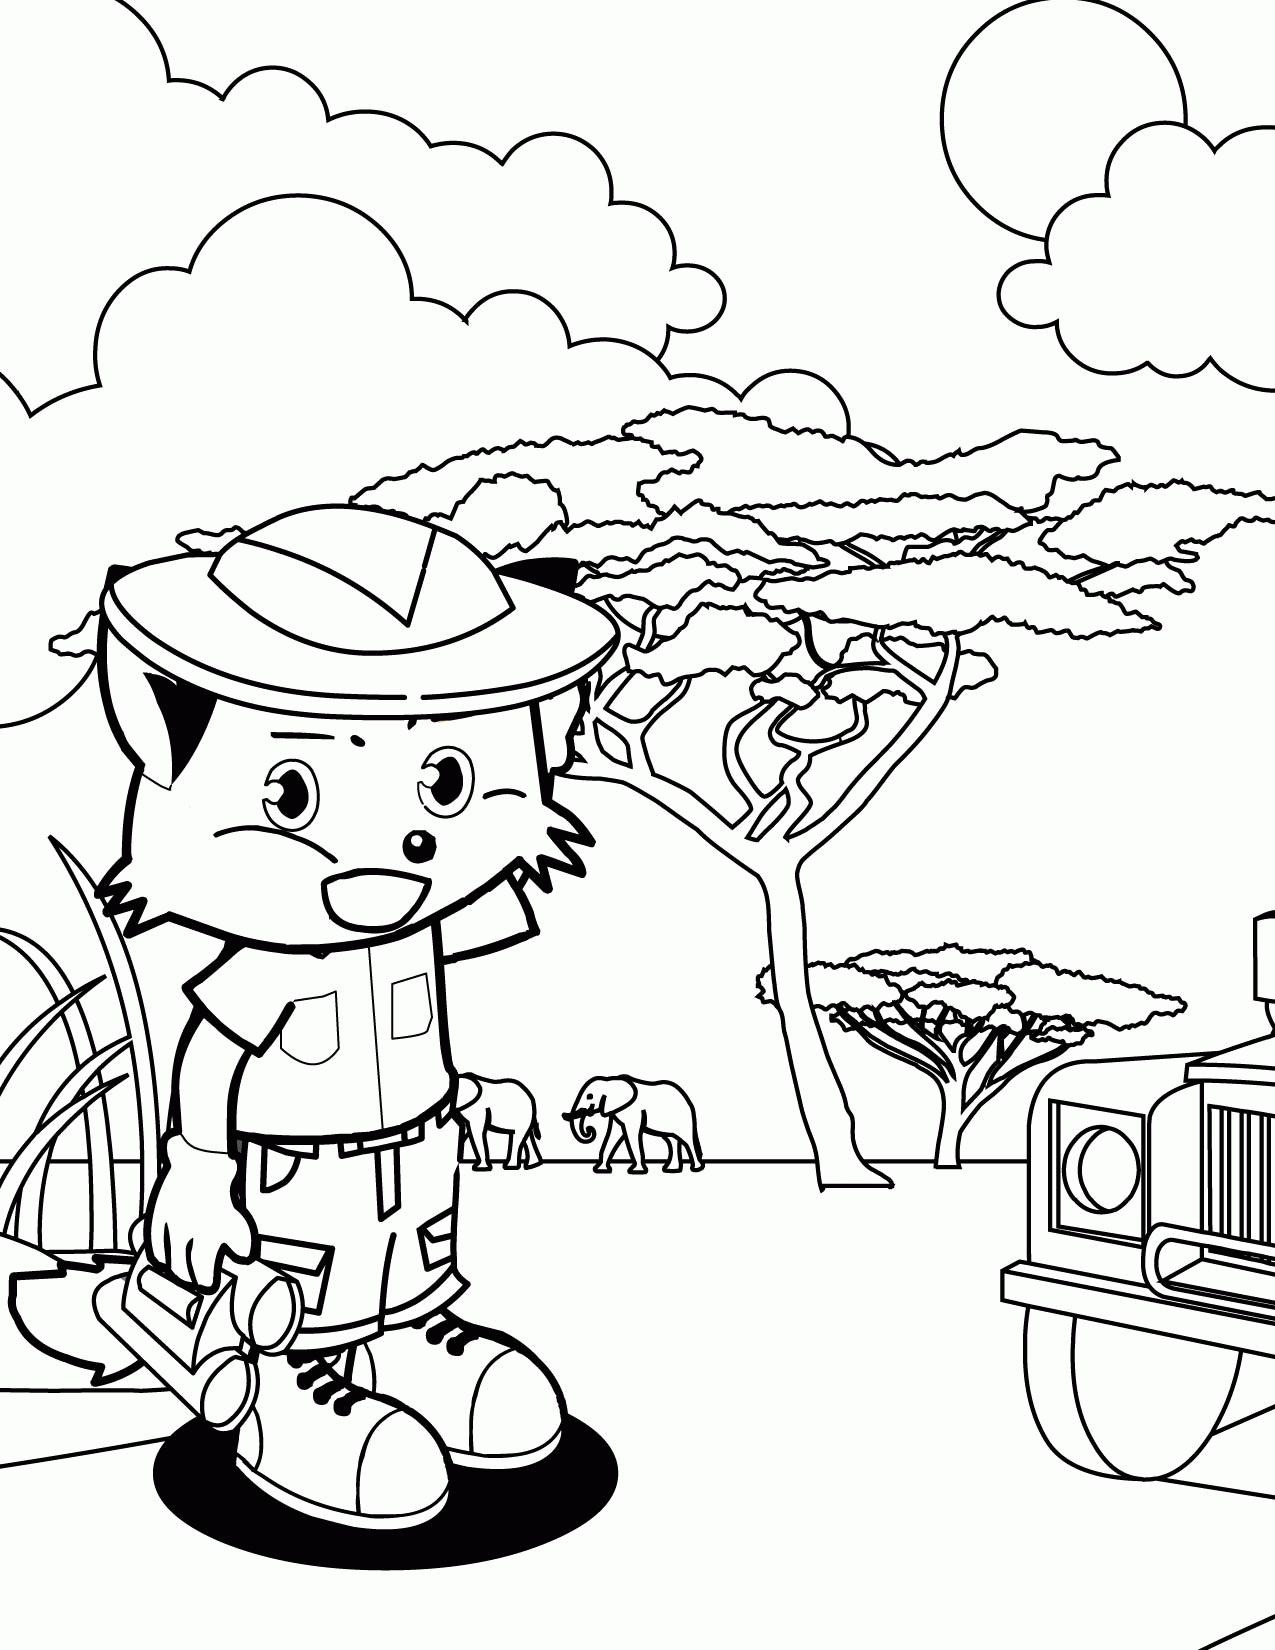 safari coloring pages - coloring pages safari